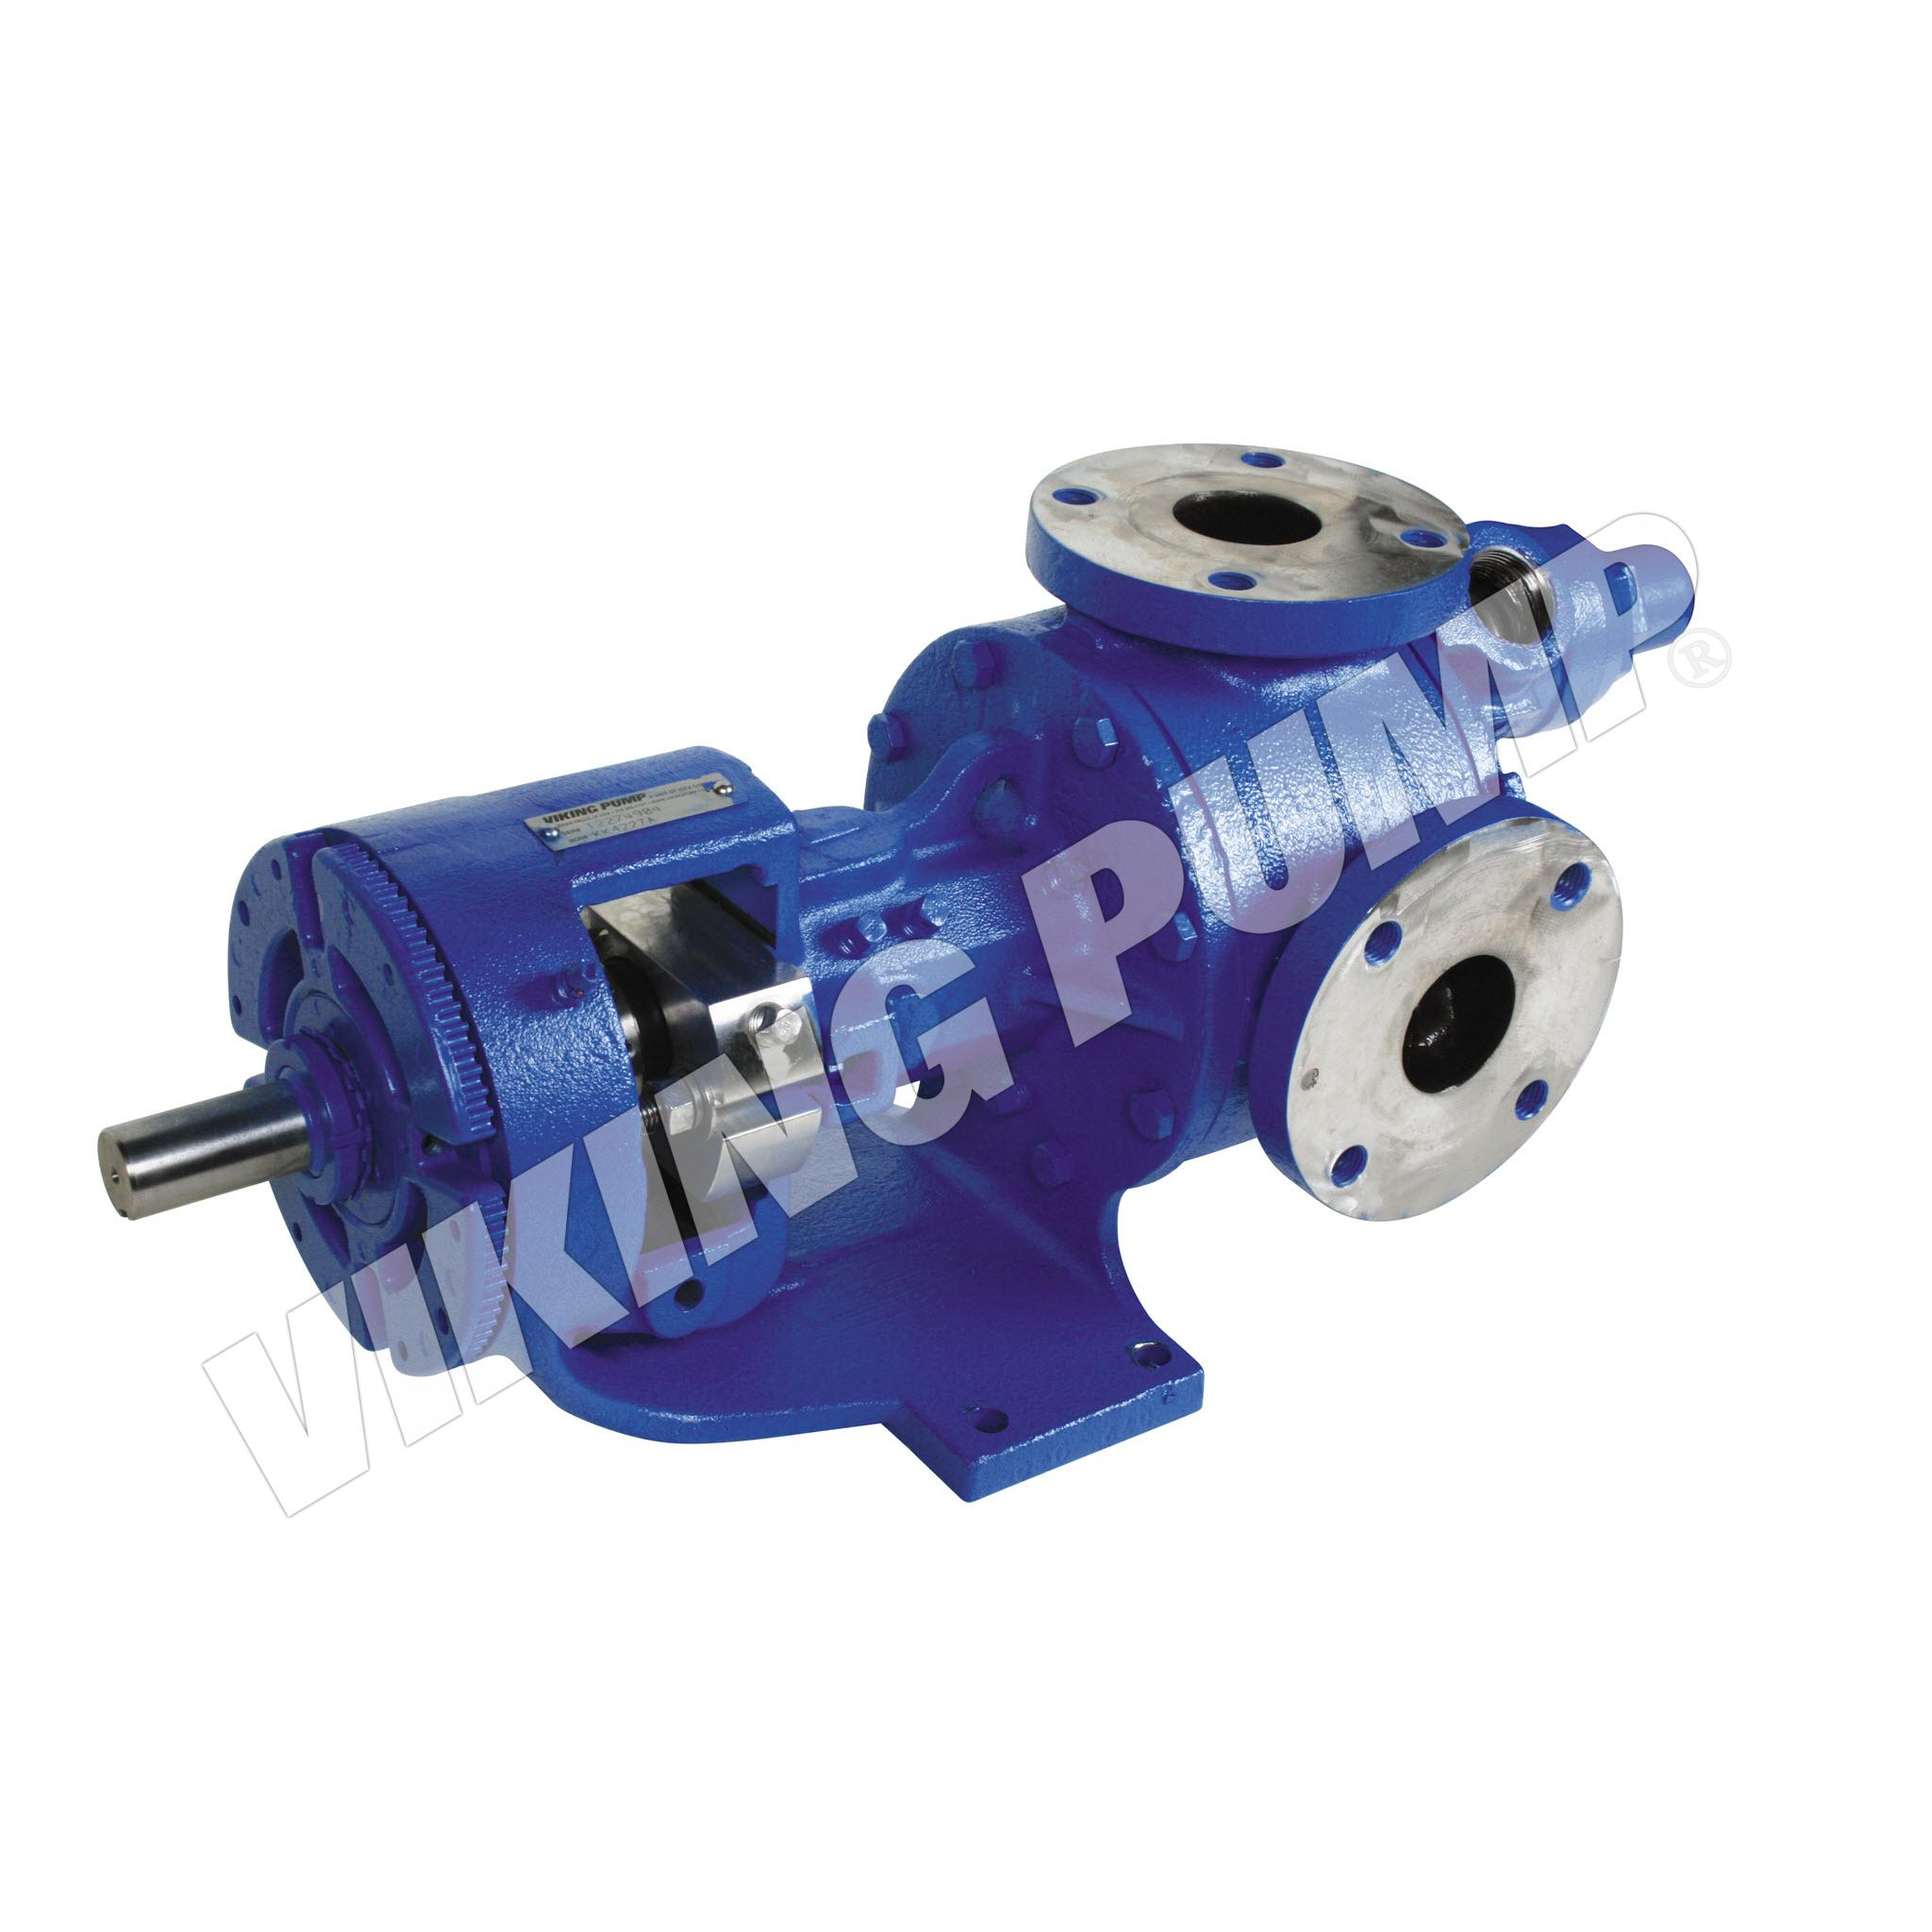 Model KK4227A, Foot Mounted, Cartridge Seal, Return-to-Tank Relief Valve Pump